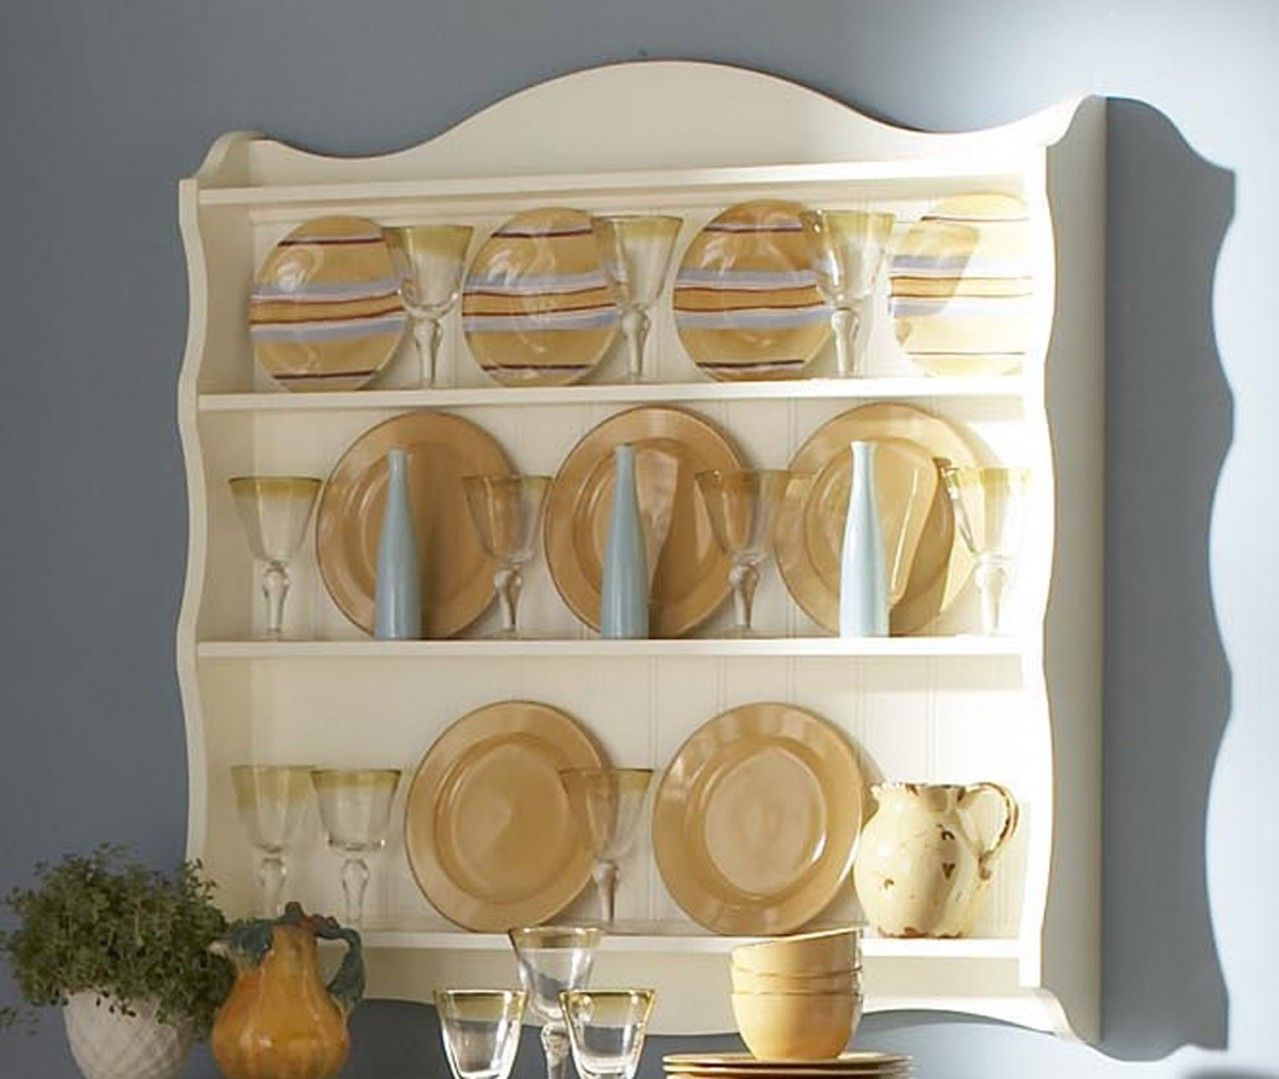 ... Awesome Perfect Plate Rack For Your Decorative Needs Plate Holders In Conjunction With Styles Of Plate Racks Awesome Wooden Plate Rack Wall Mounted & Decorating Ideas Awesome Perfect Plate Rack For Your Decorative ...